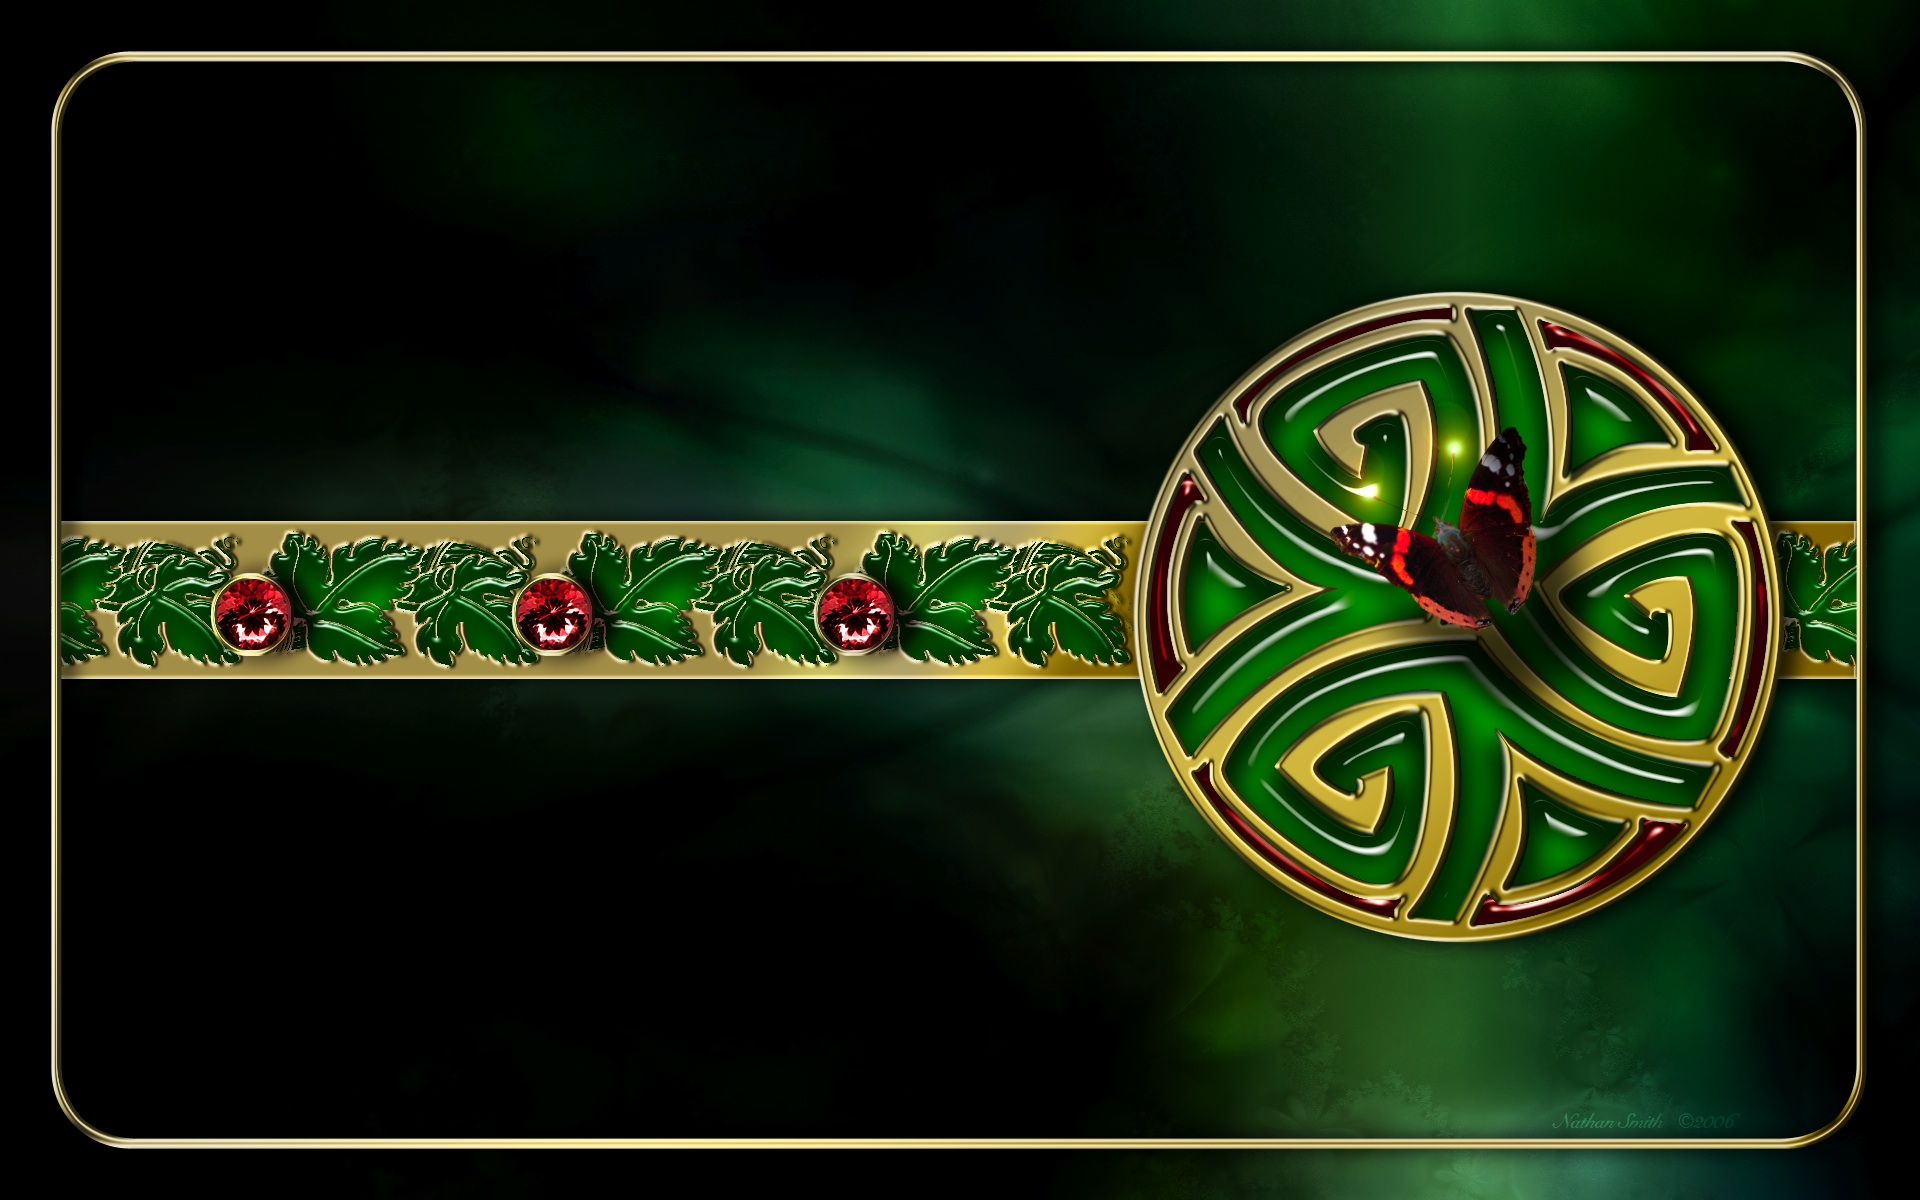 Celtic Art Wallpaper